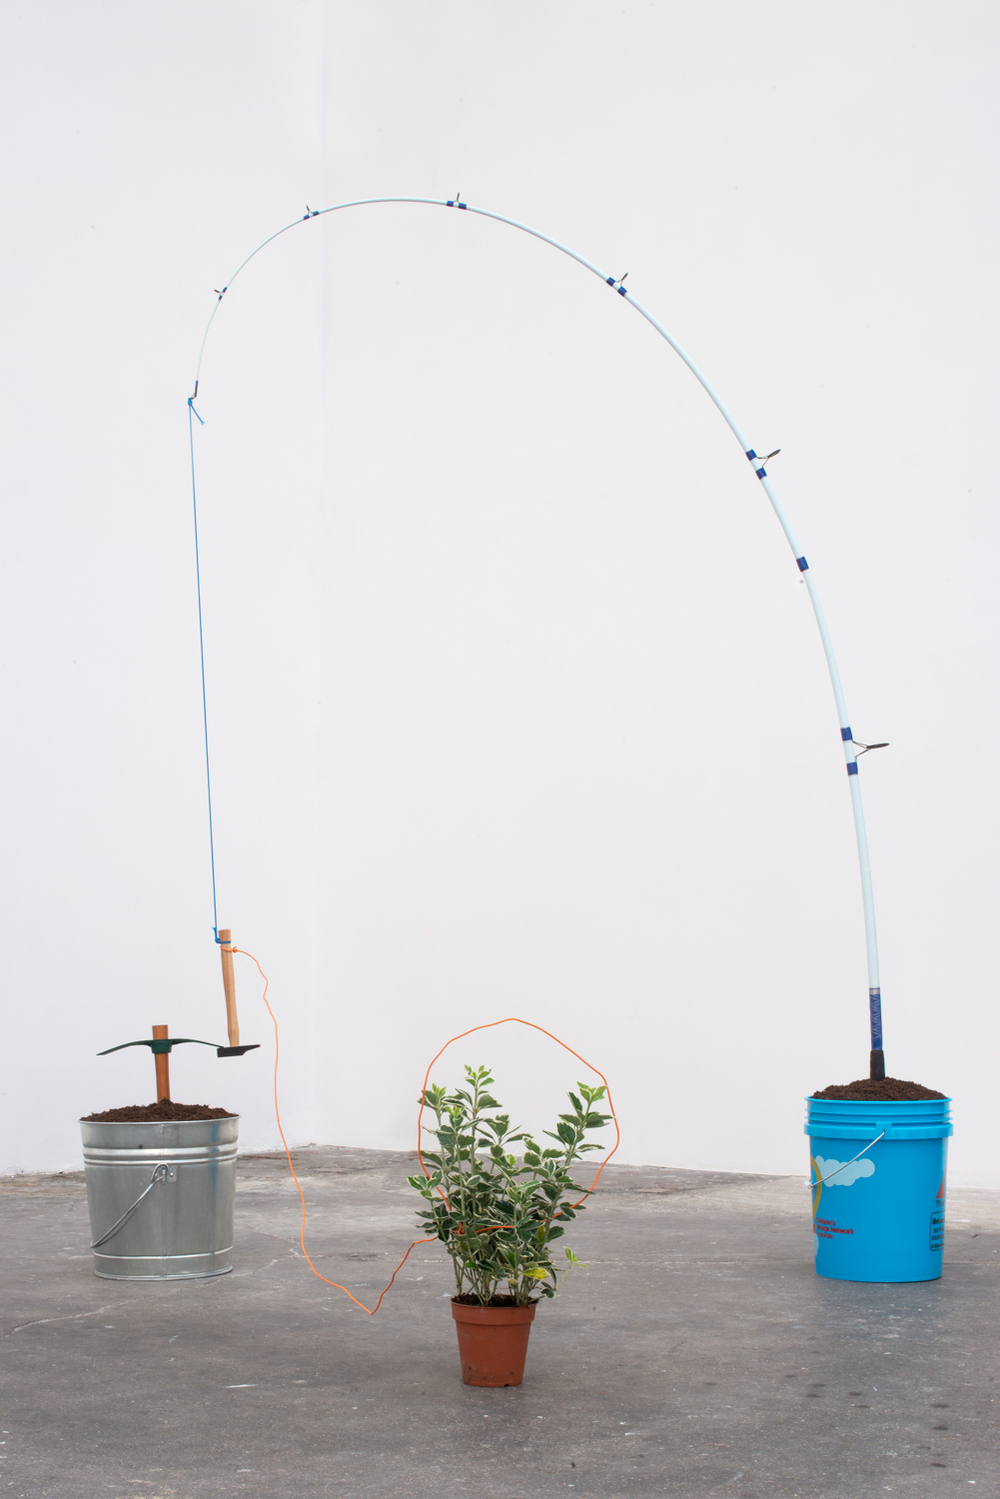 Trapaholic, 2014 Fishing pole, garden hoe, hammer, plant, chord, dirt, plastic and steel Dimensions variable